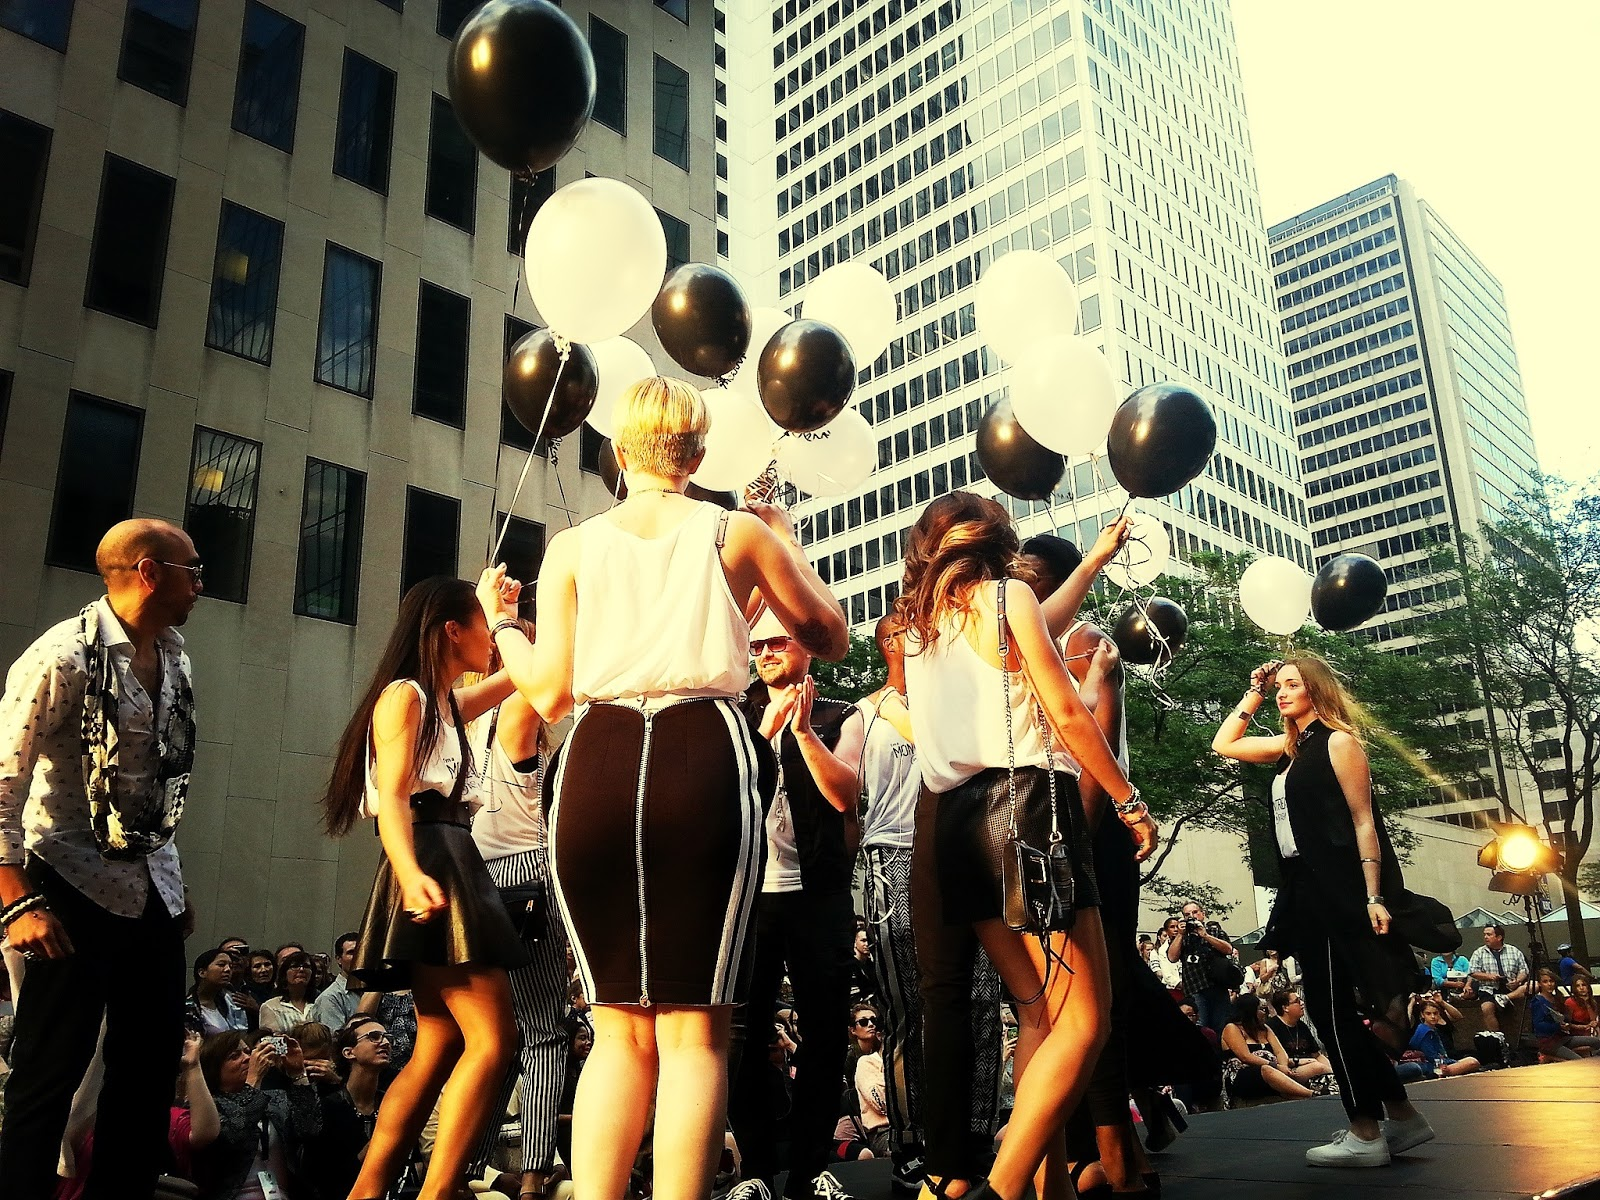 Les Montreal(er) in fashion show ballons festival mode design